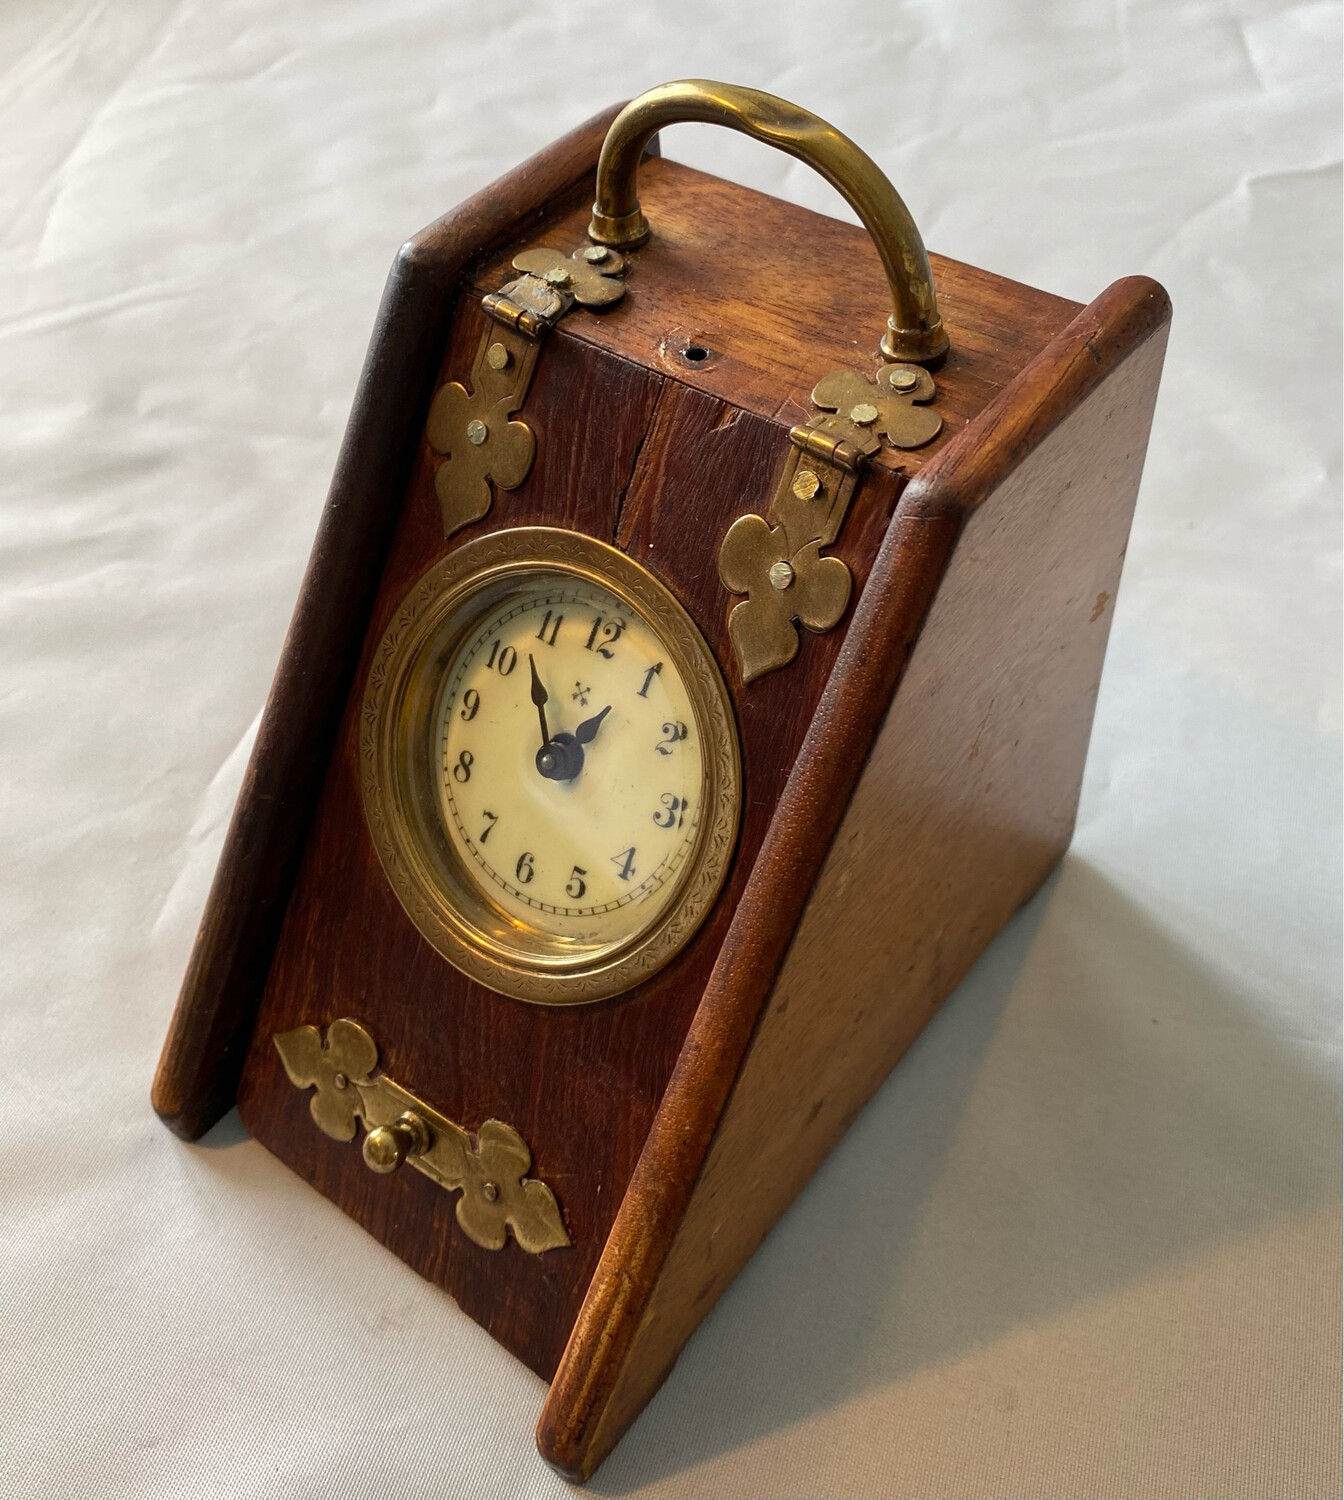 Unusual HAC Hamburg American Clock in small wooden case - probably early 1920's or 30's